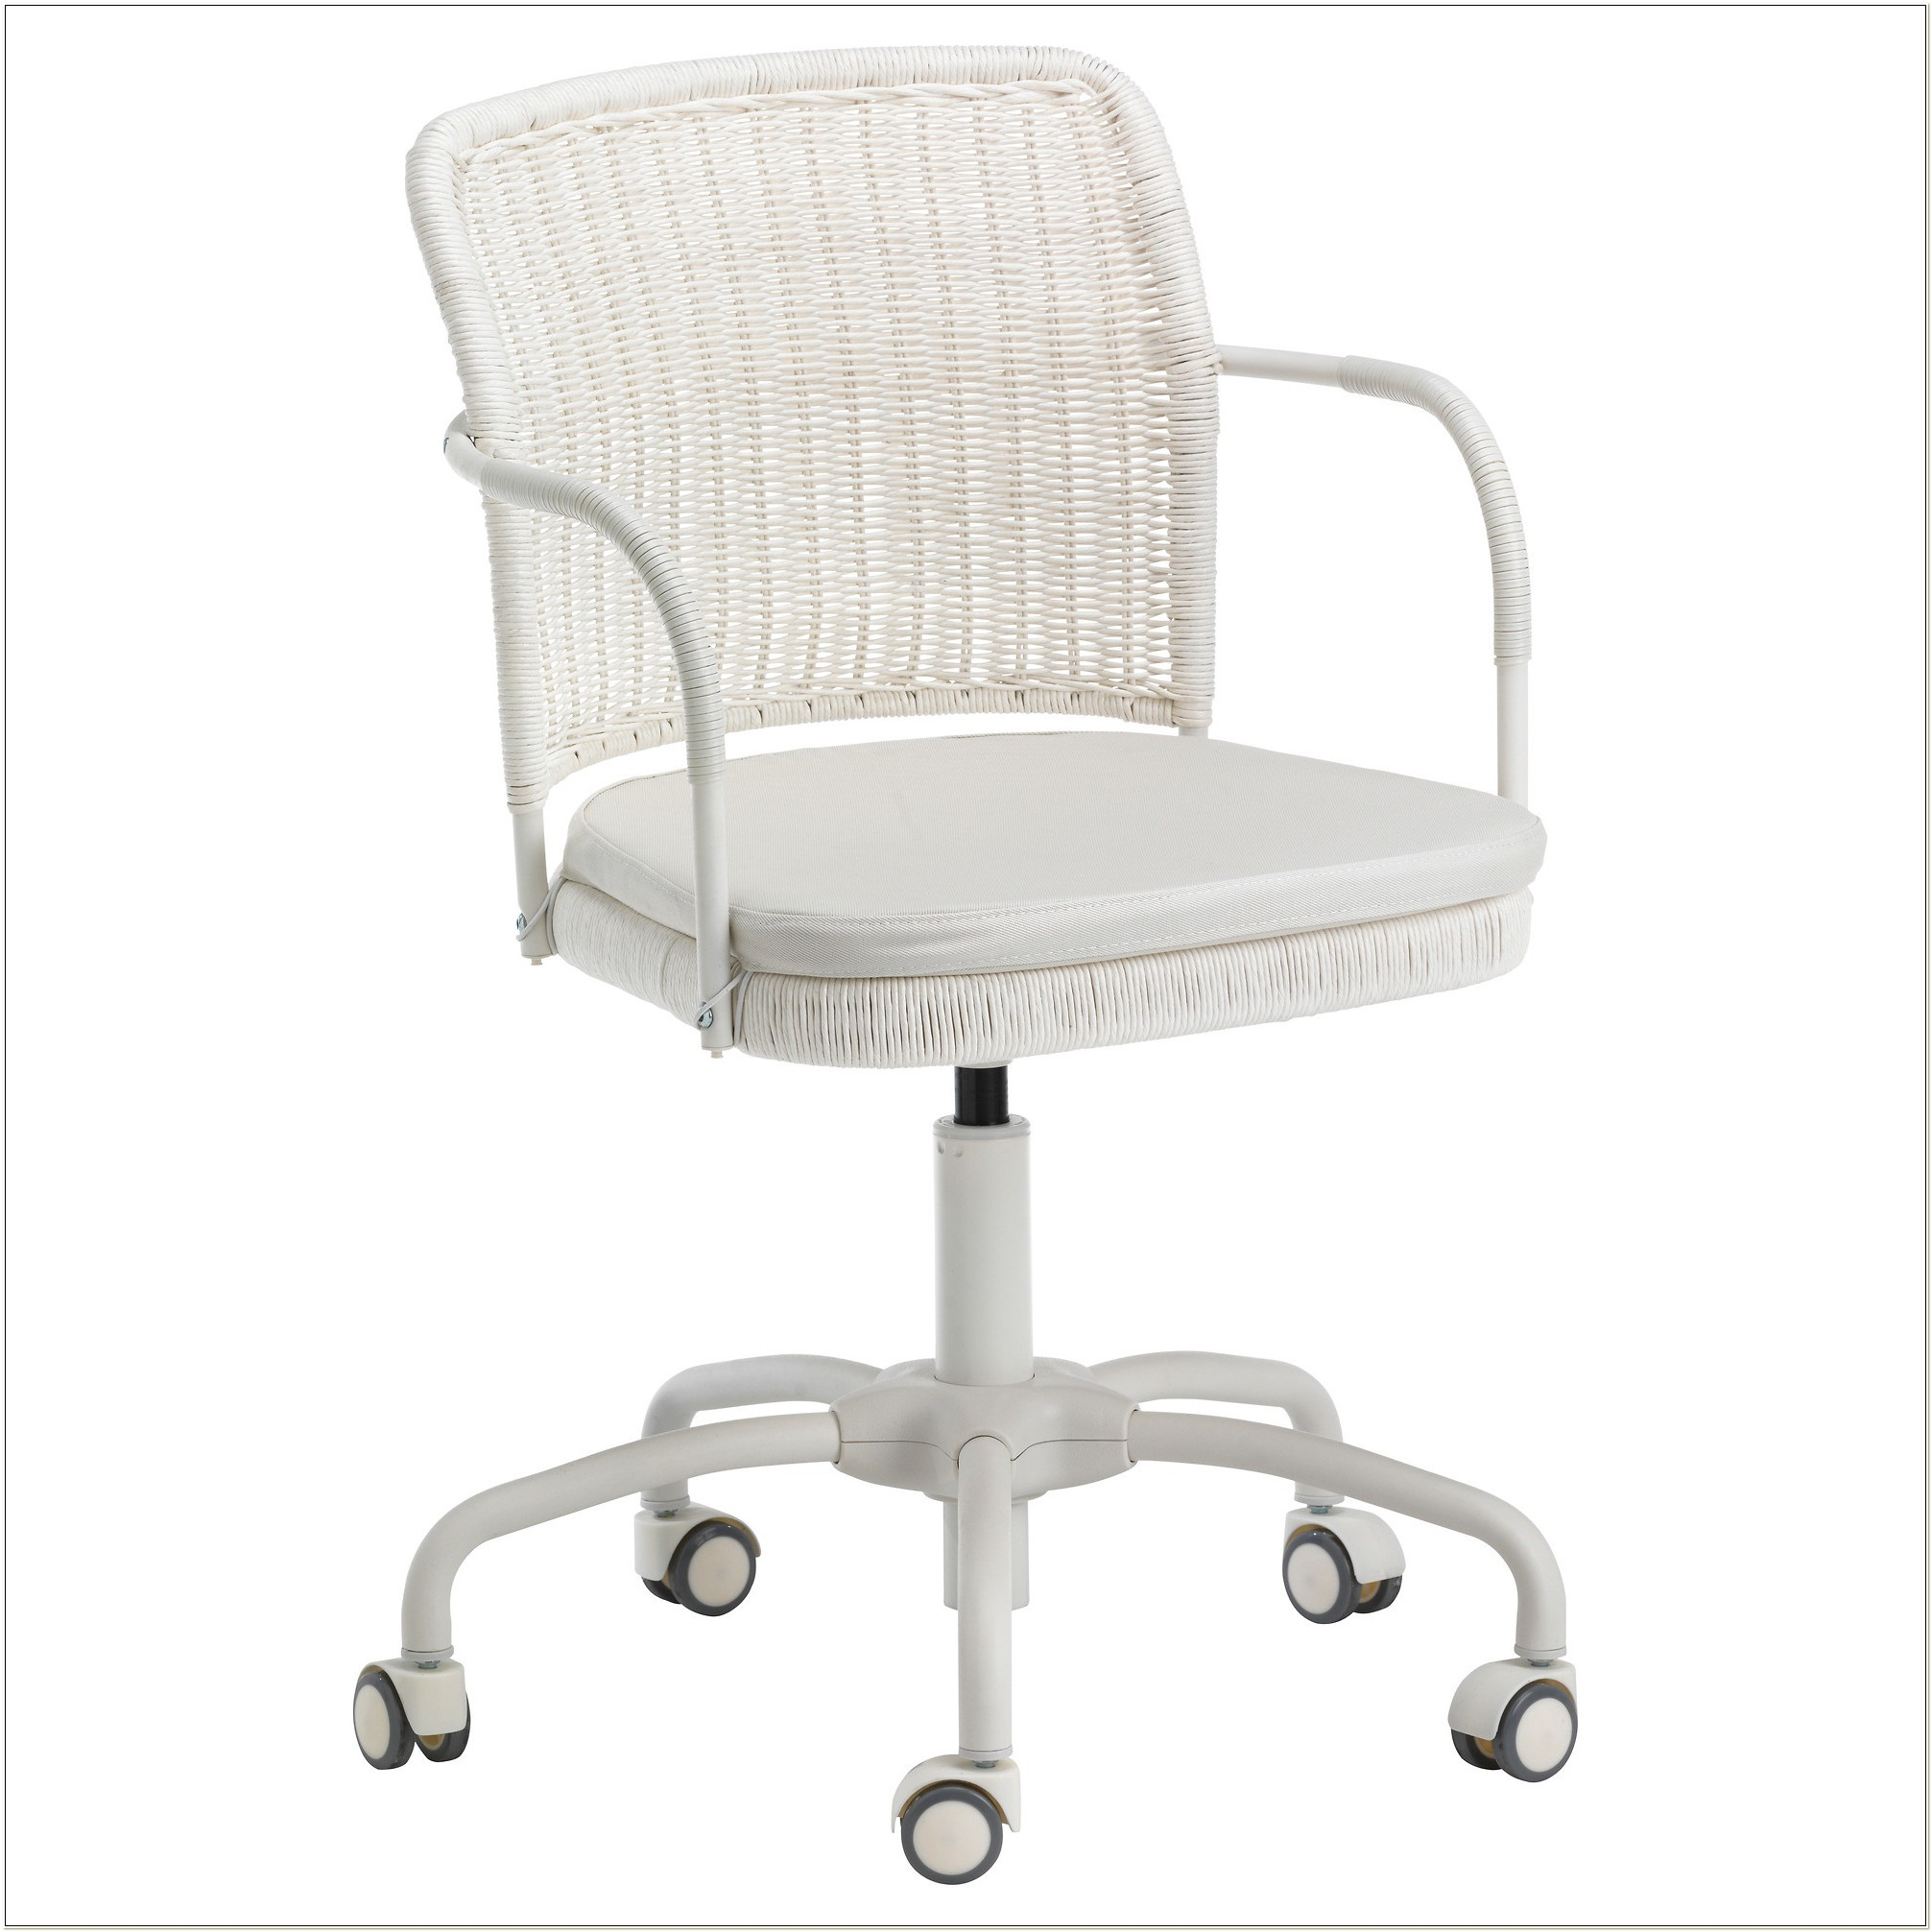 Ikea White Wicker Office Chair